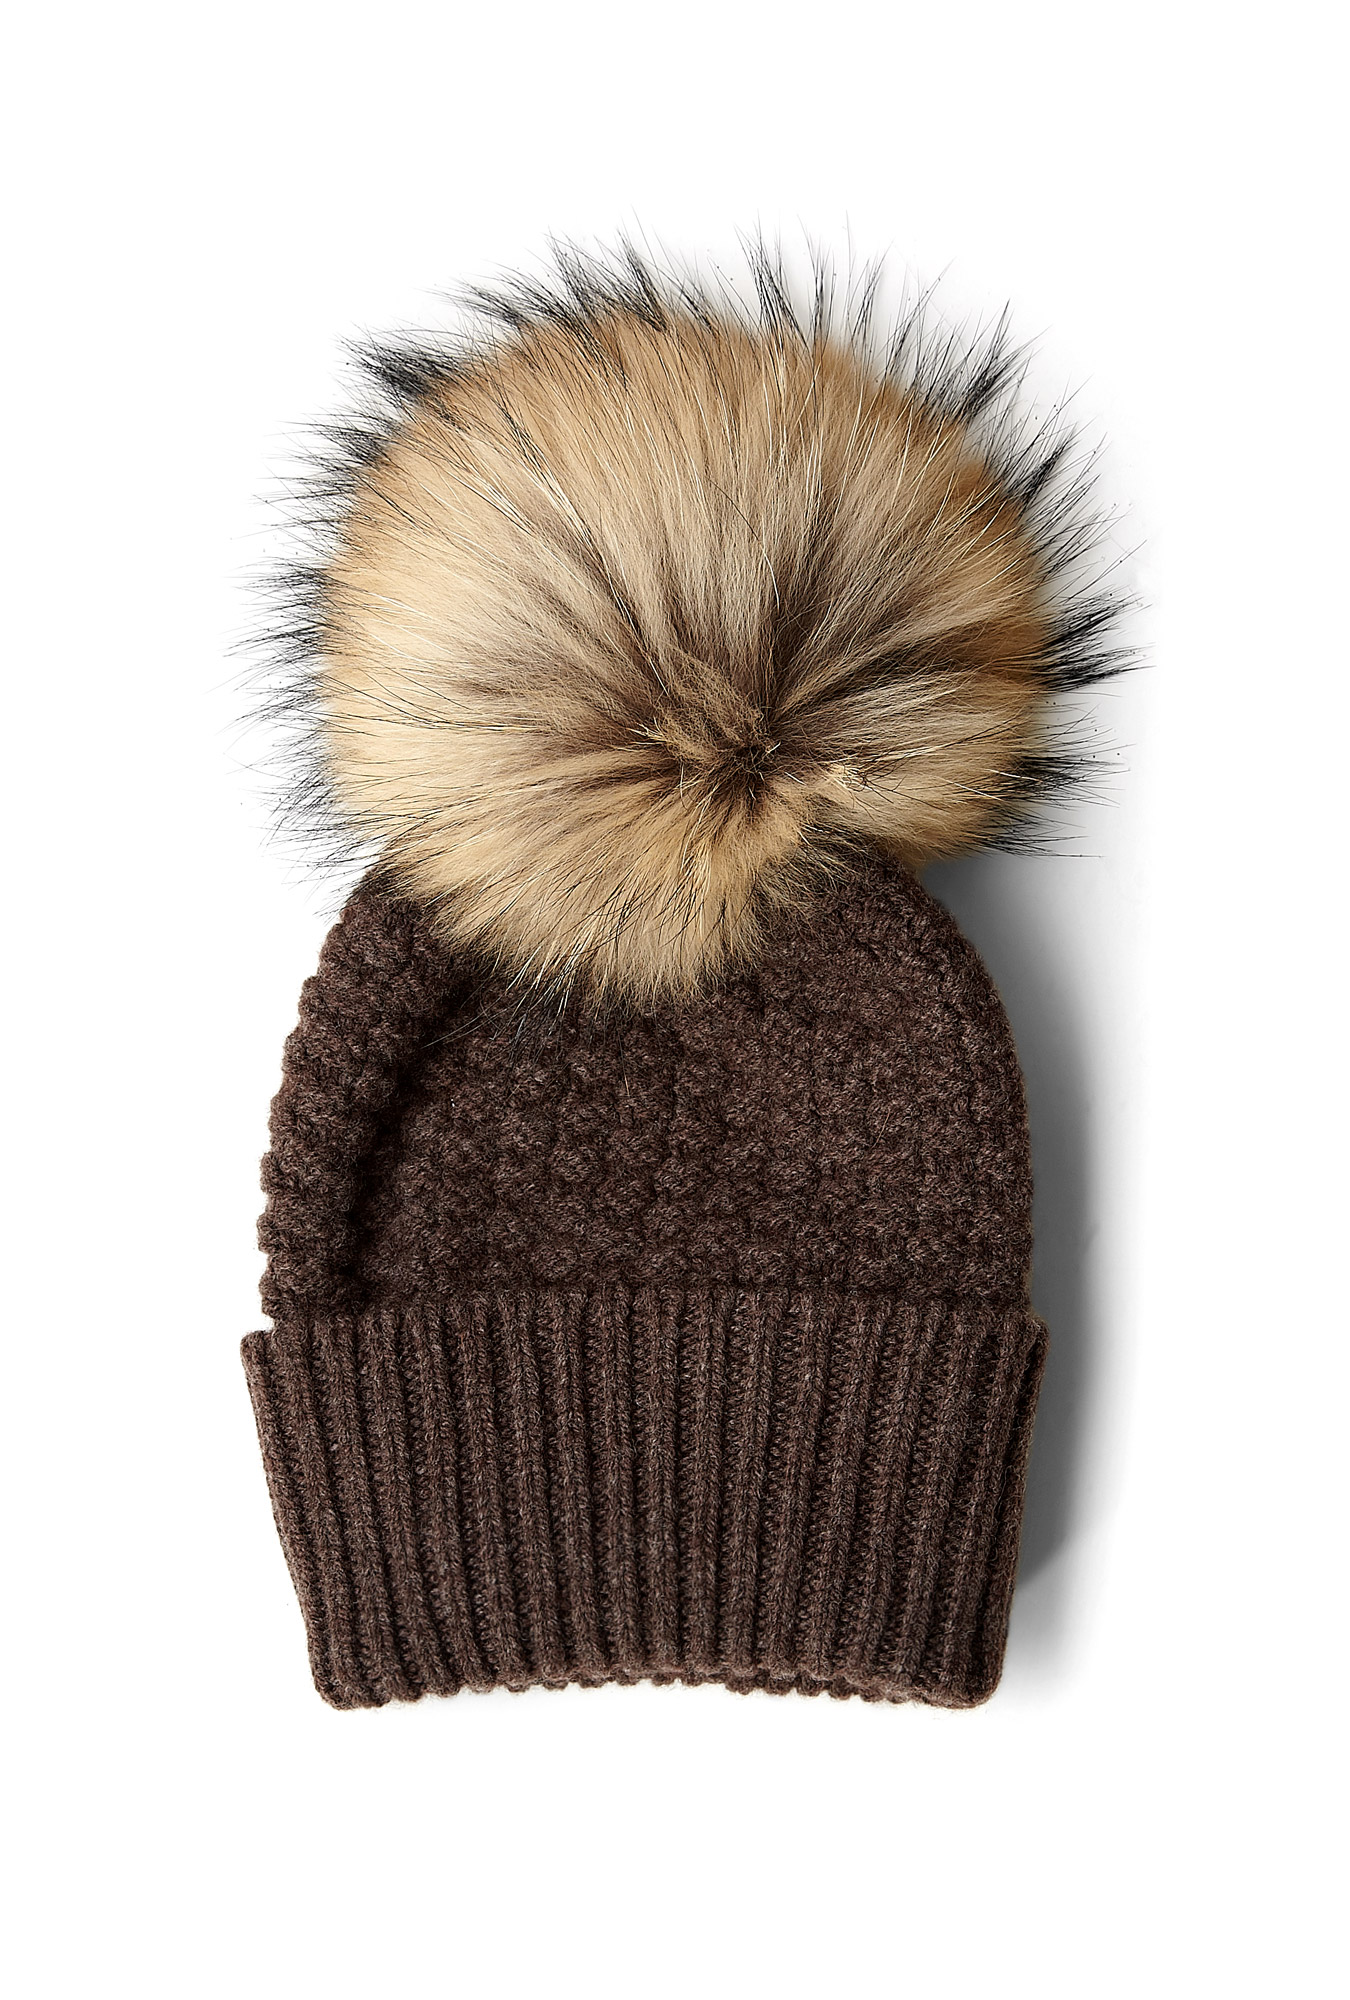 Inverni Firenze   Wool and Cashmere Beanie with Turn Up and Fur Pom Pom by Inverni Firenzi